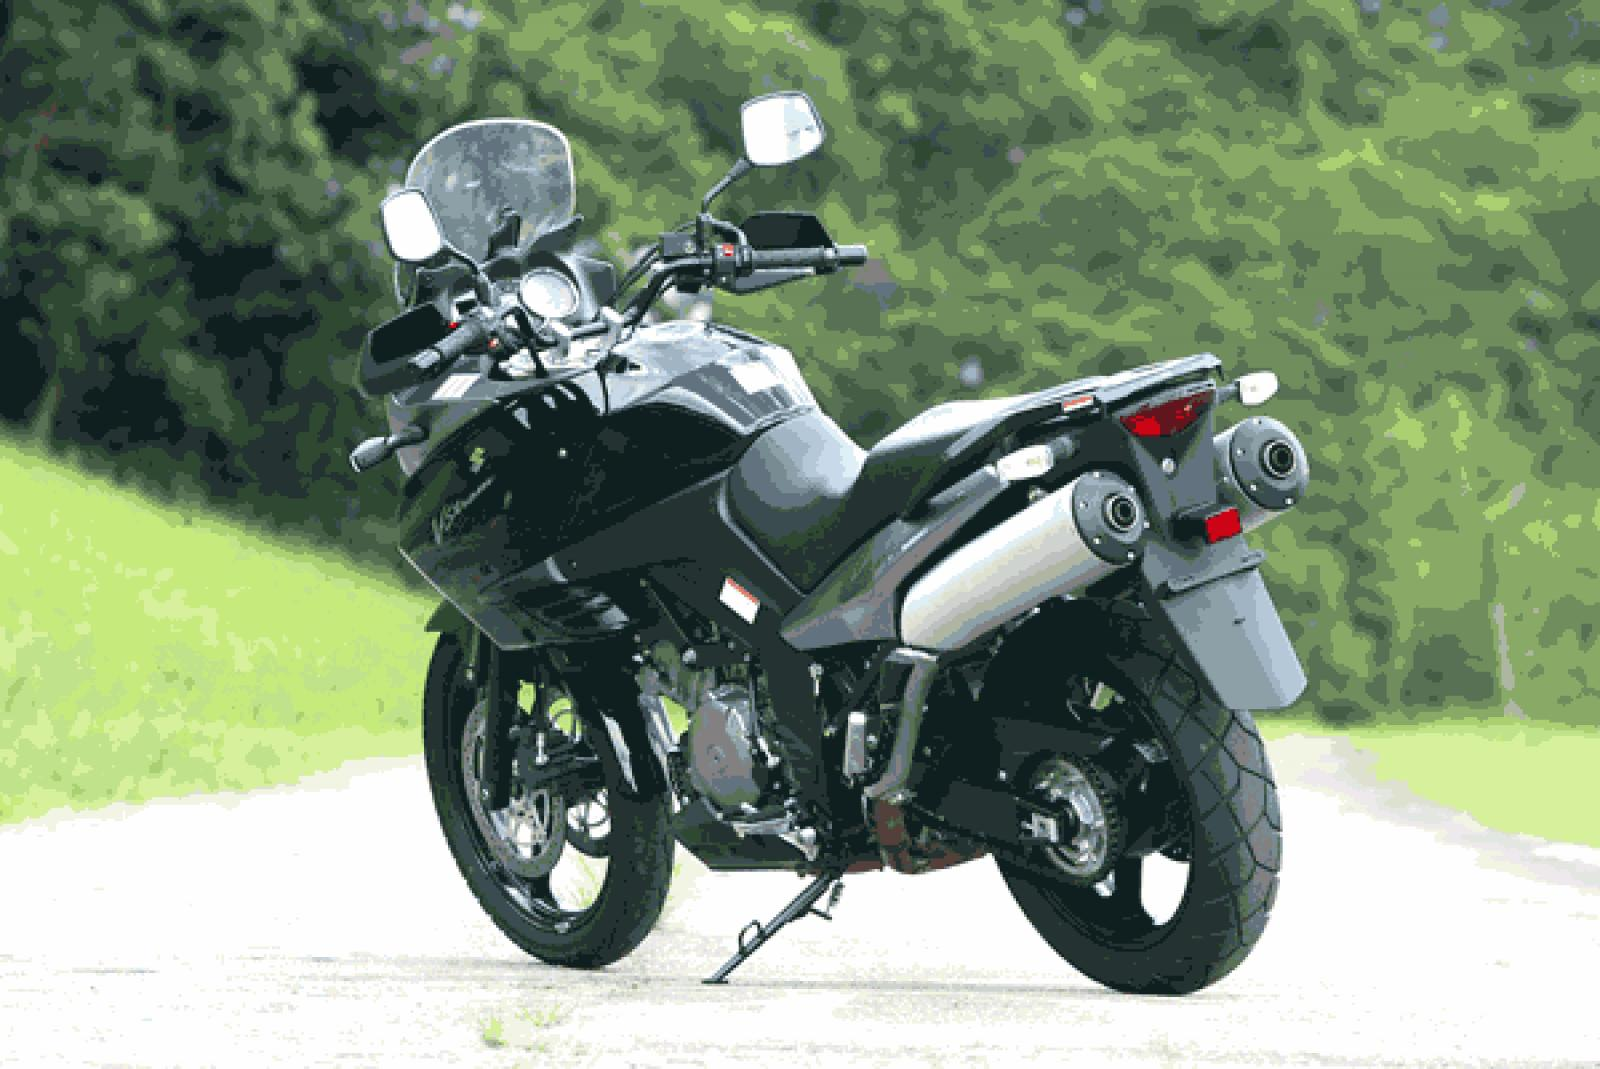 2008 suzuki v strom 1000 moto zombdrive com. Black Bedroom Furniture Sets. Home Design Ideas